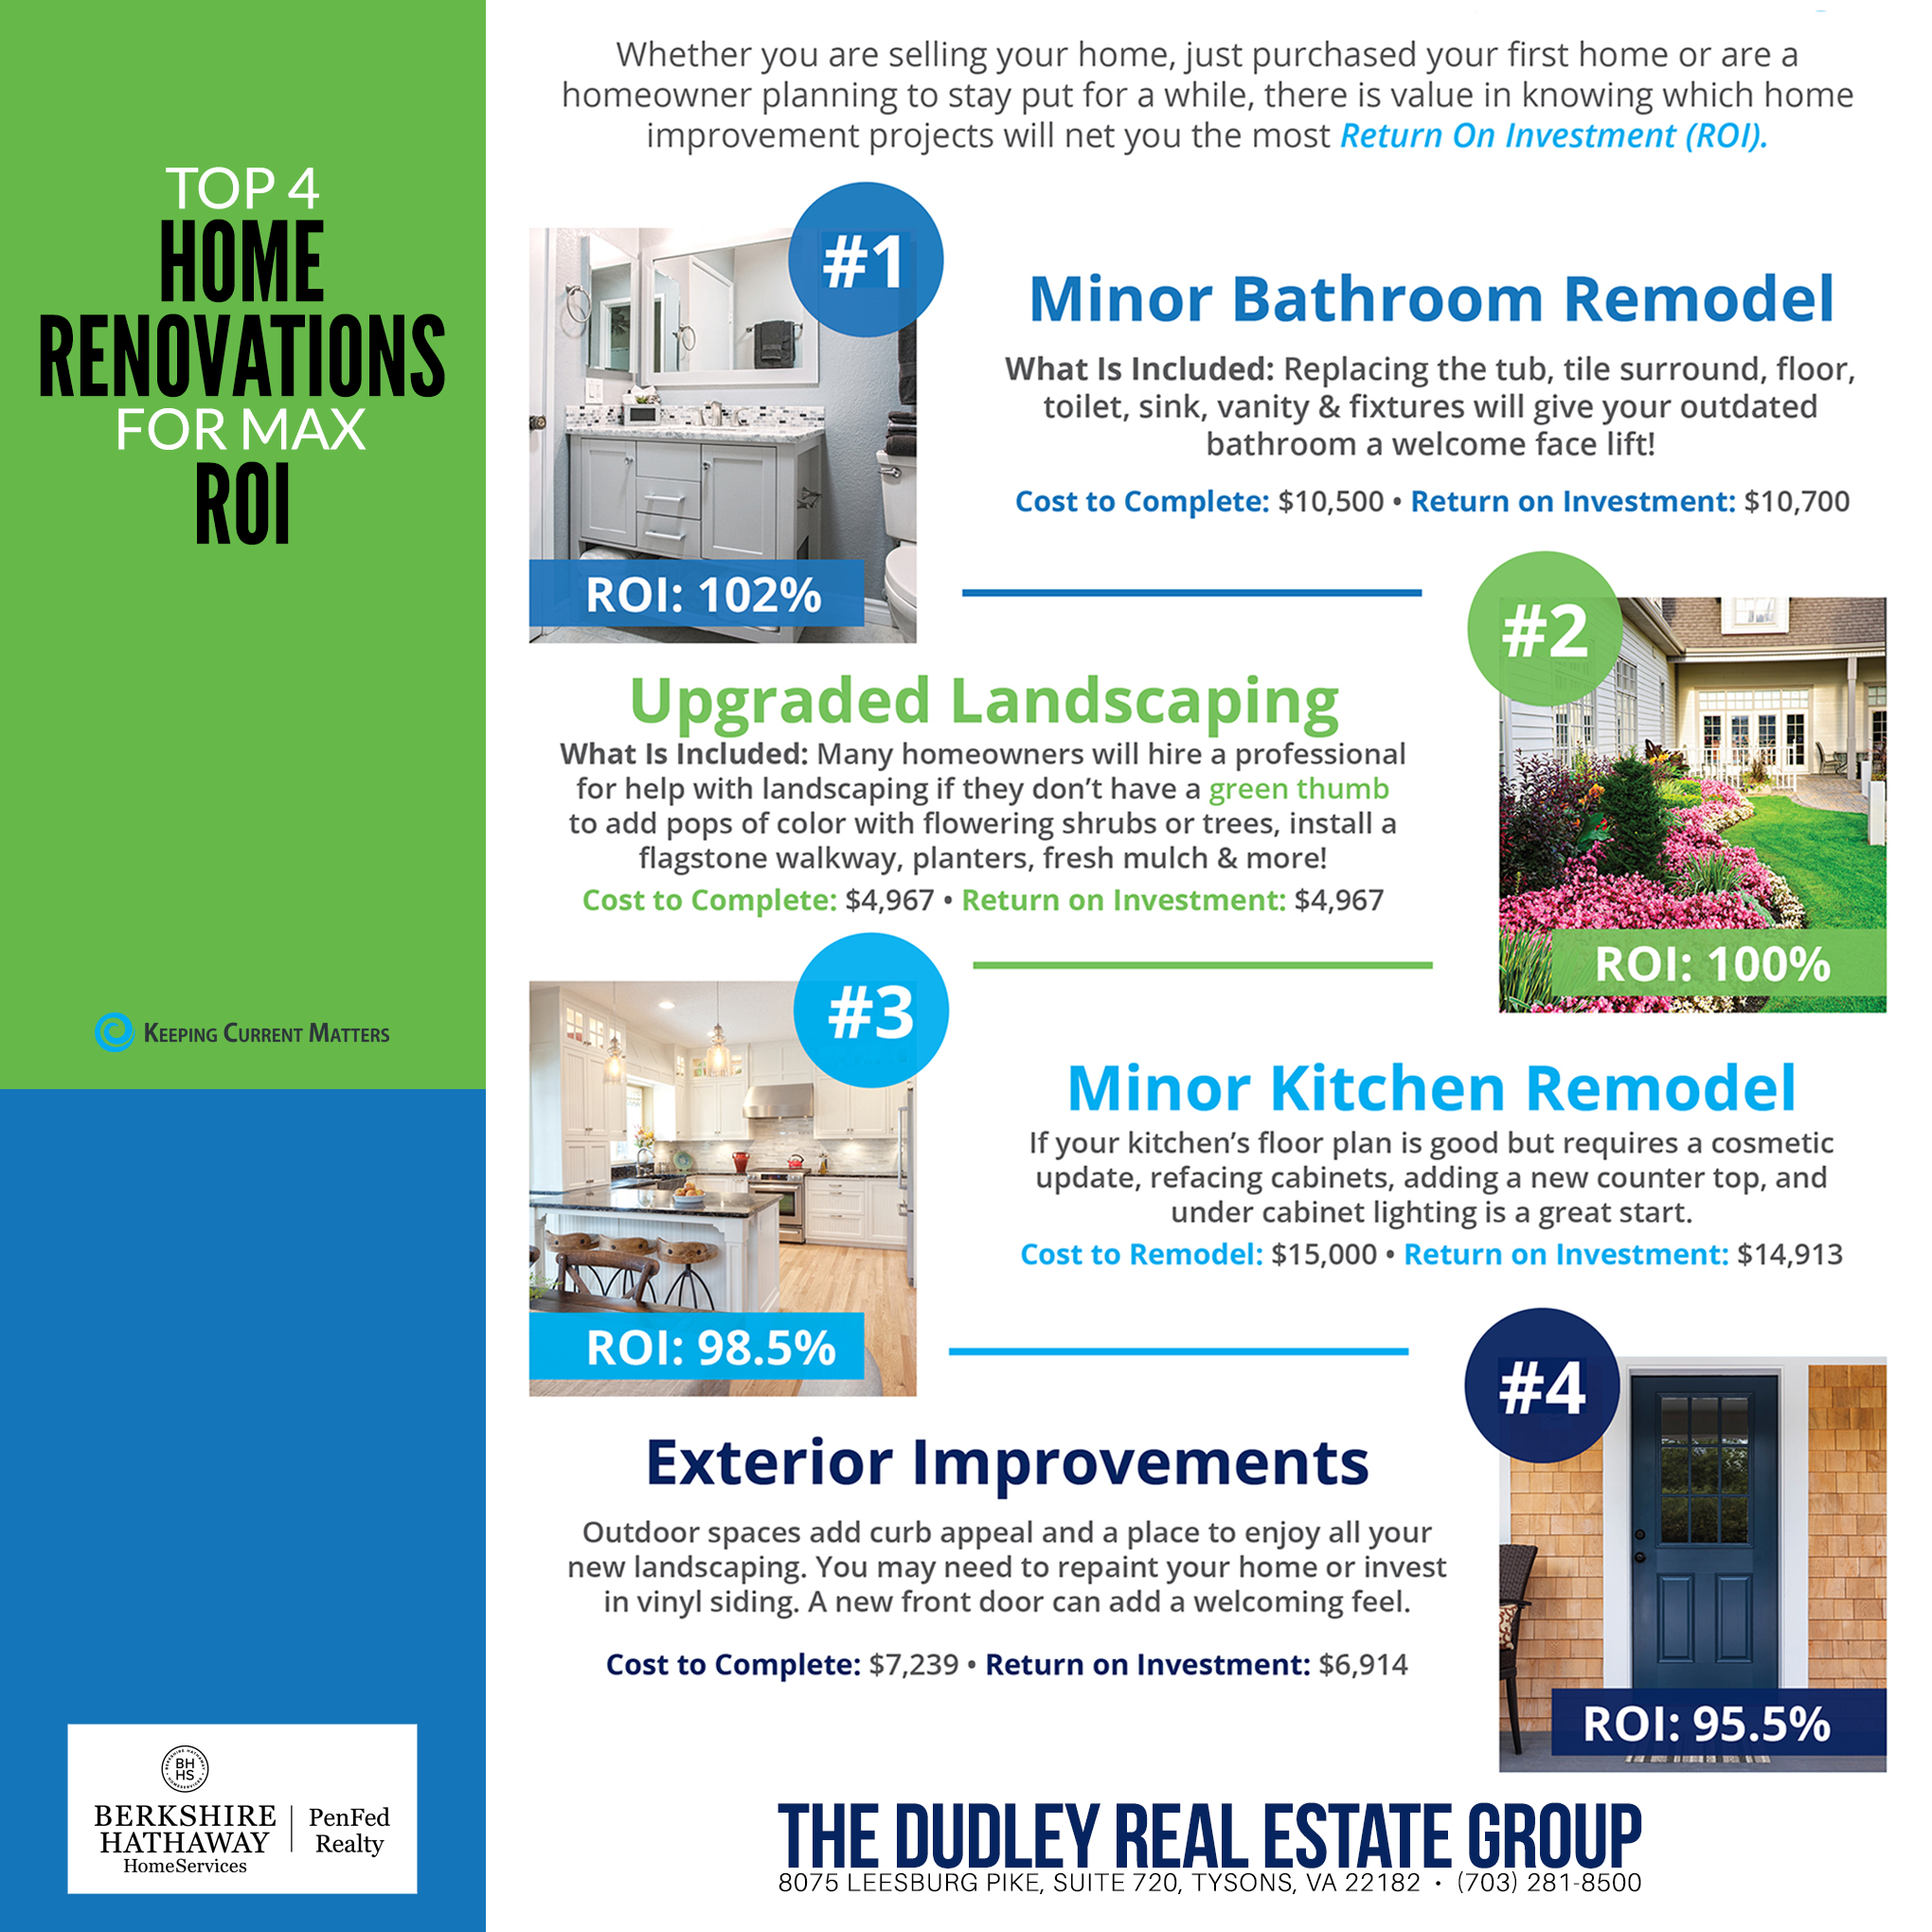 Top 4 Home Renovations For Max ROI | The Dudley Real Estate Group ...